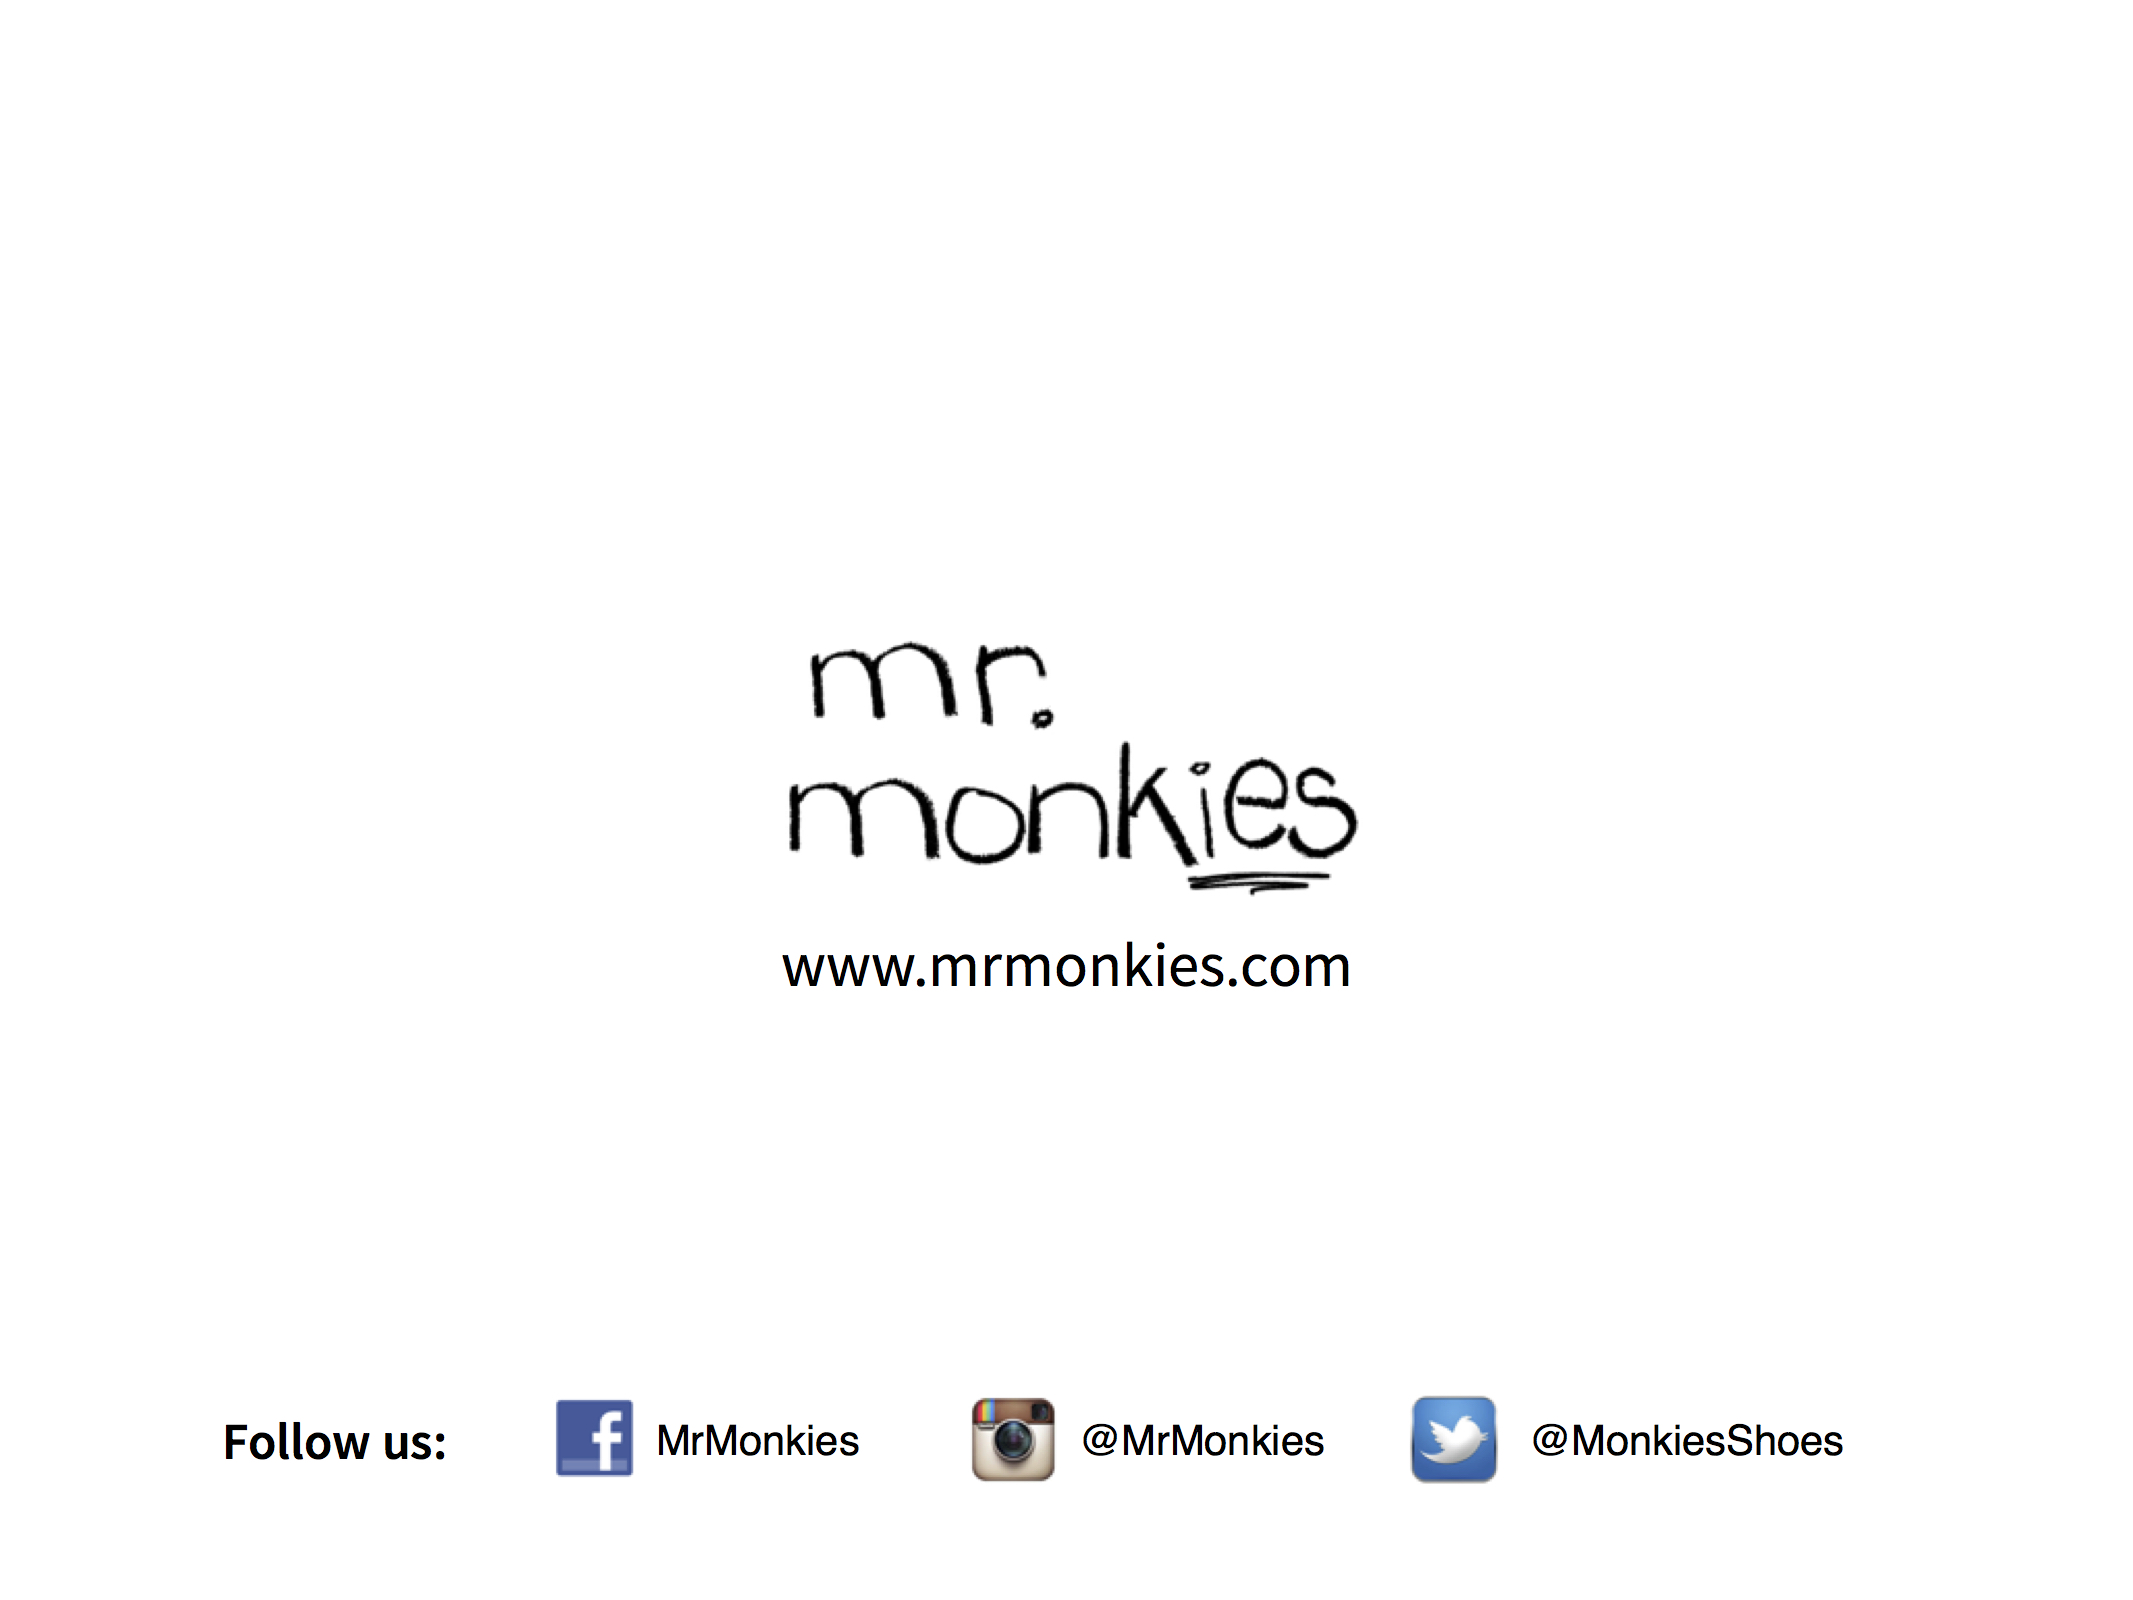 MrMonkies - Brand Intro 2016 9